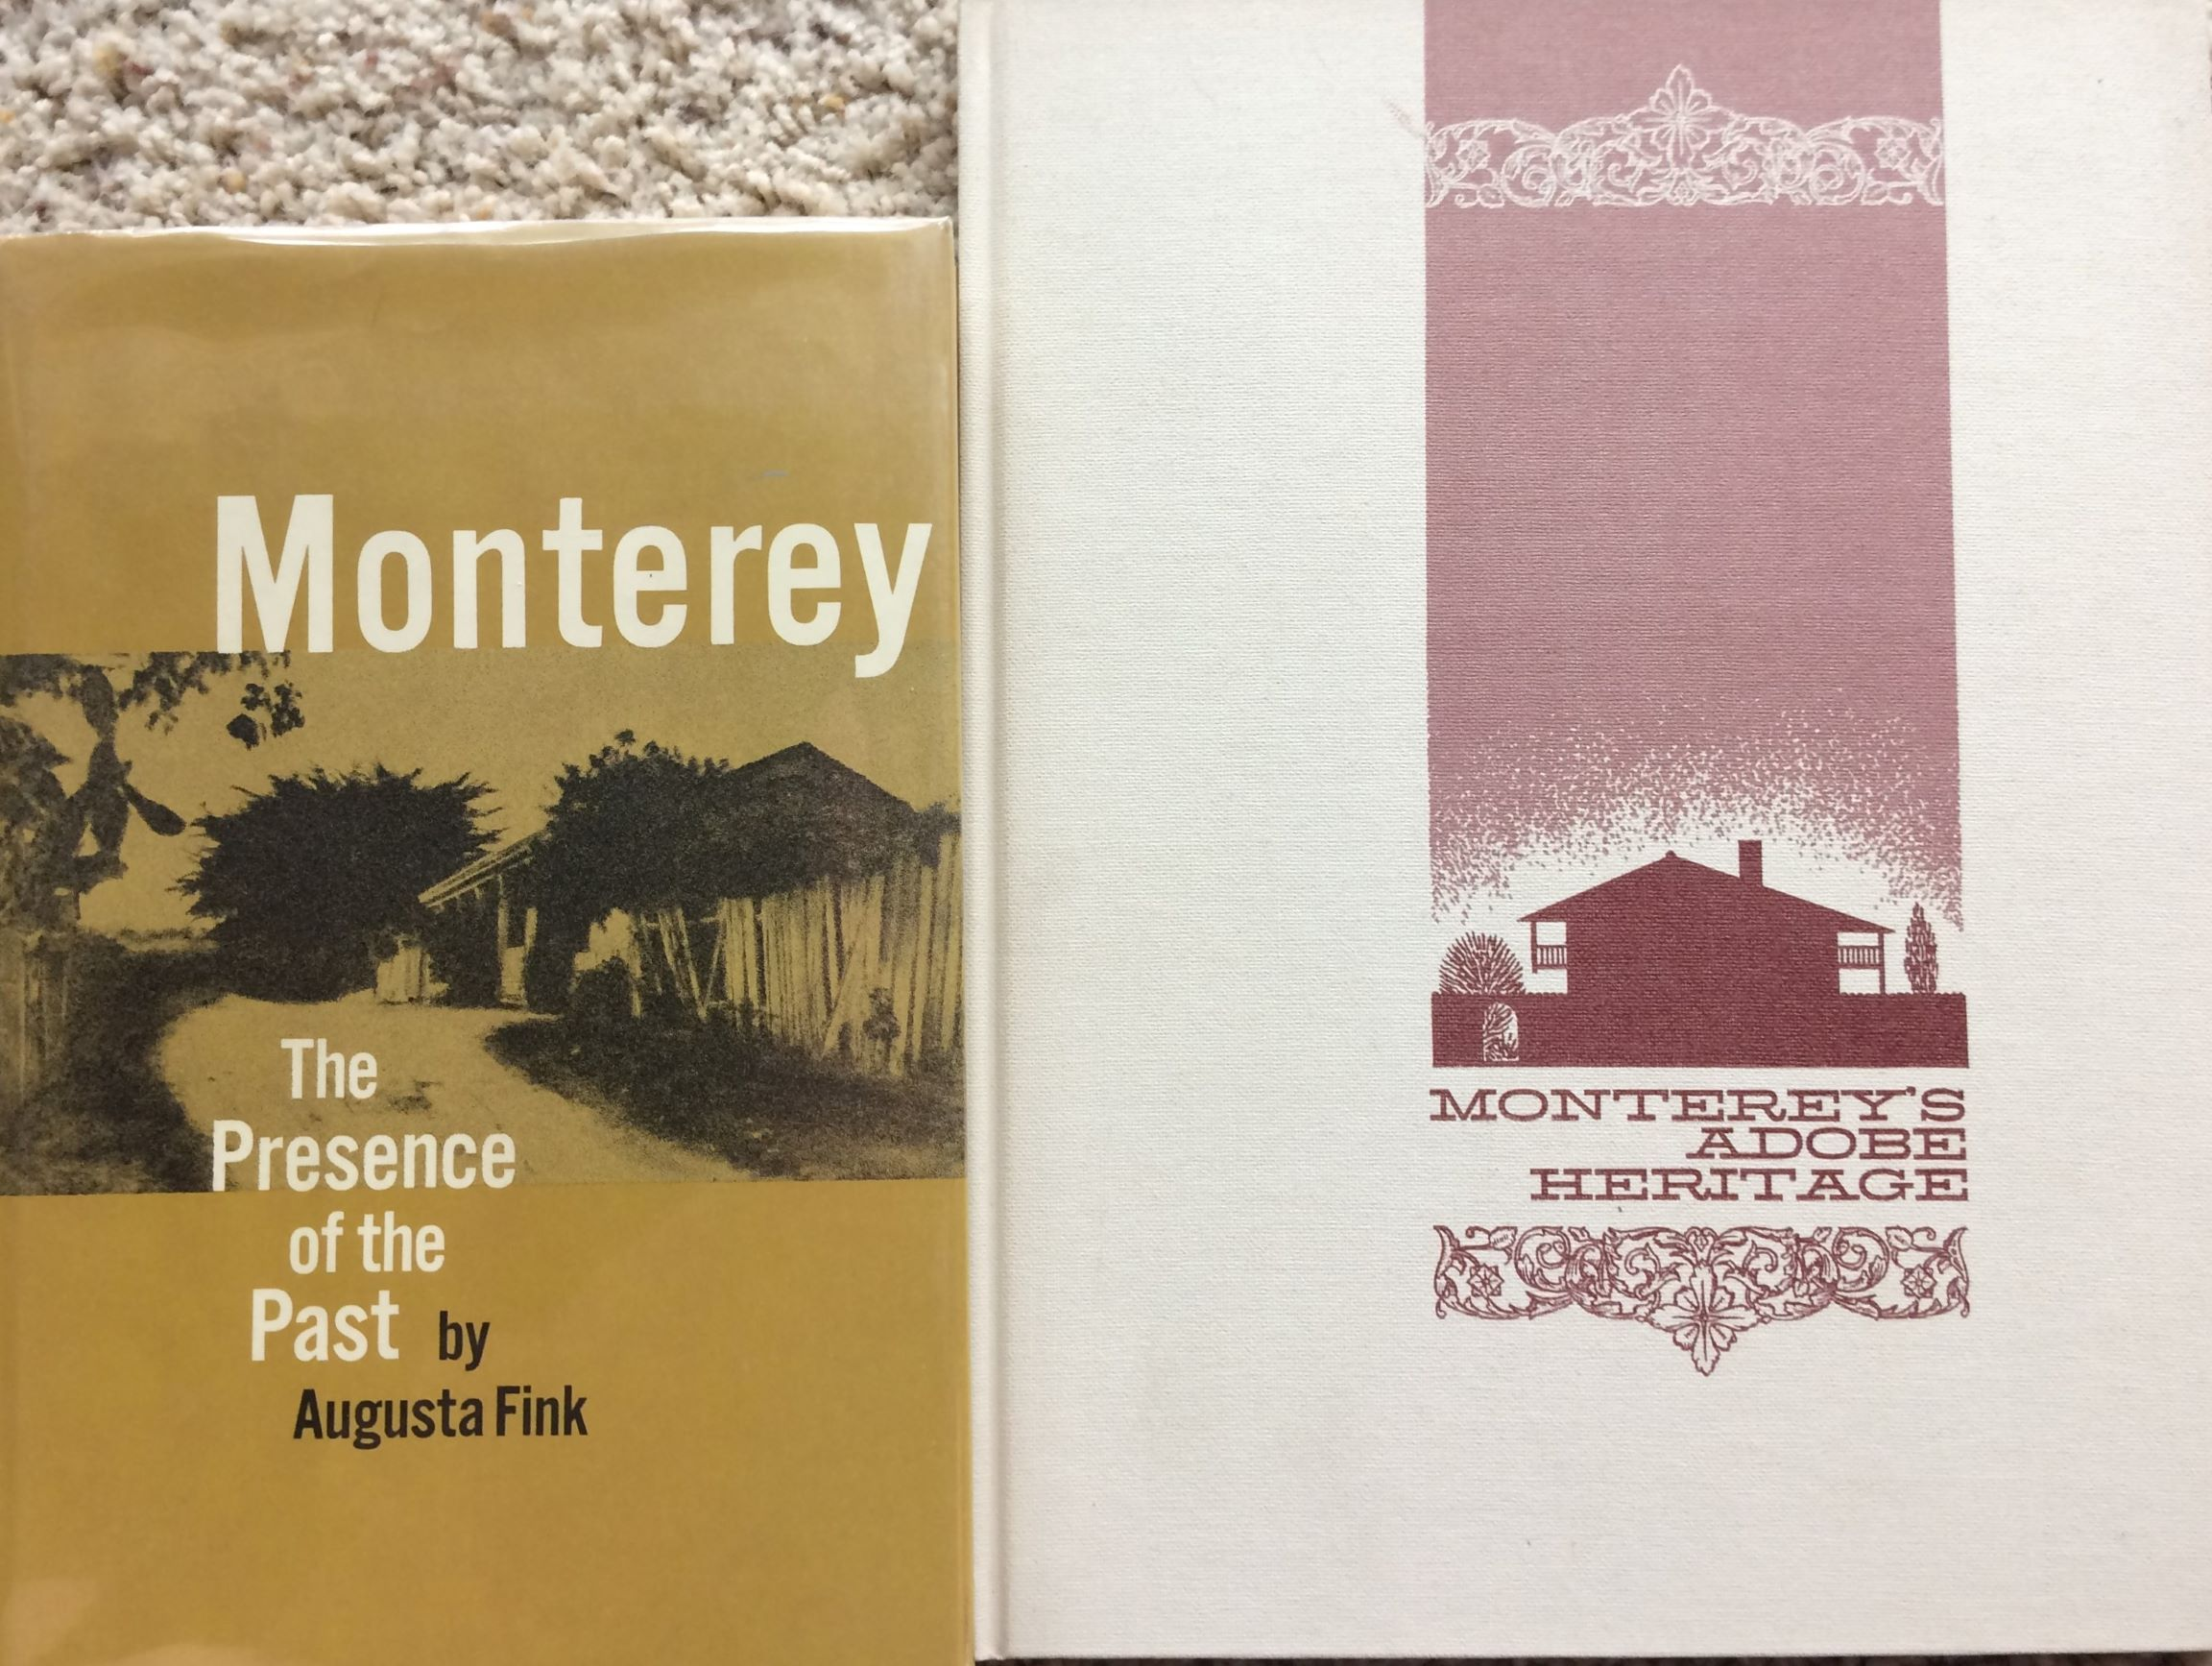 Image for (Three Titles): Monterey, The Presence of the Past; together with, Monterey's Adobe Heritage; and Monterey Bay Yesterday, a nostalgic  era in postcards.